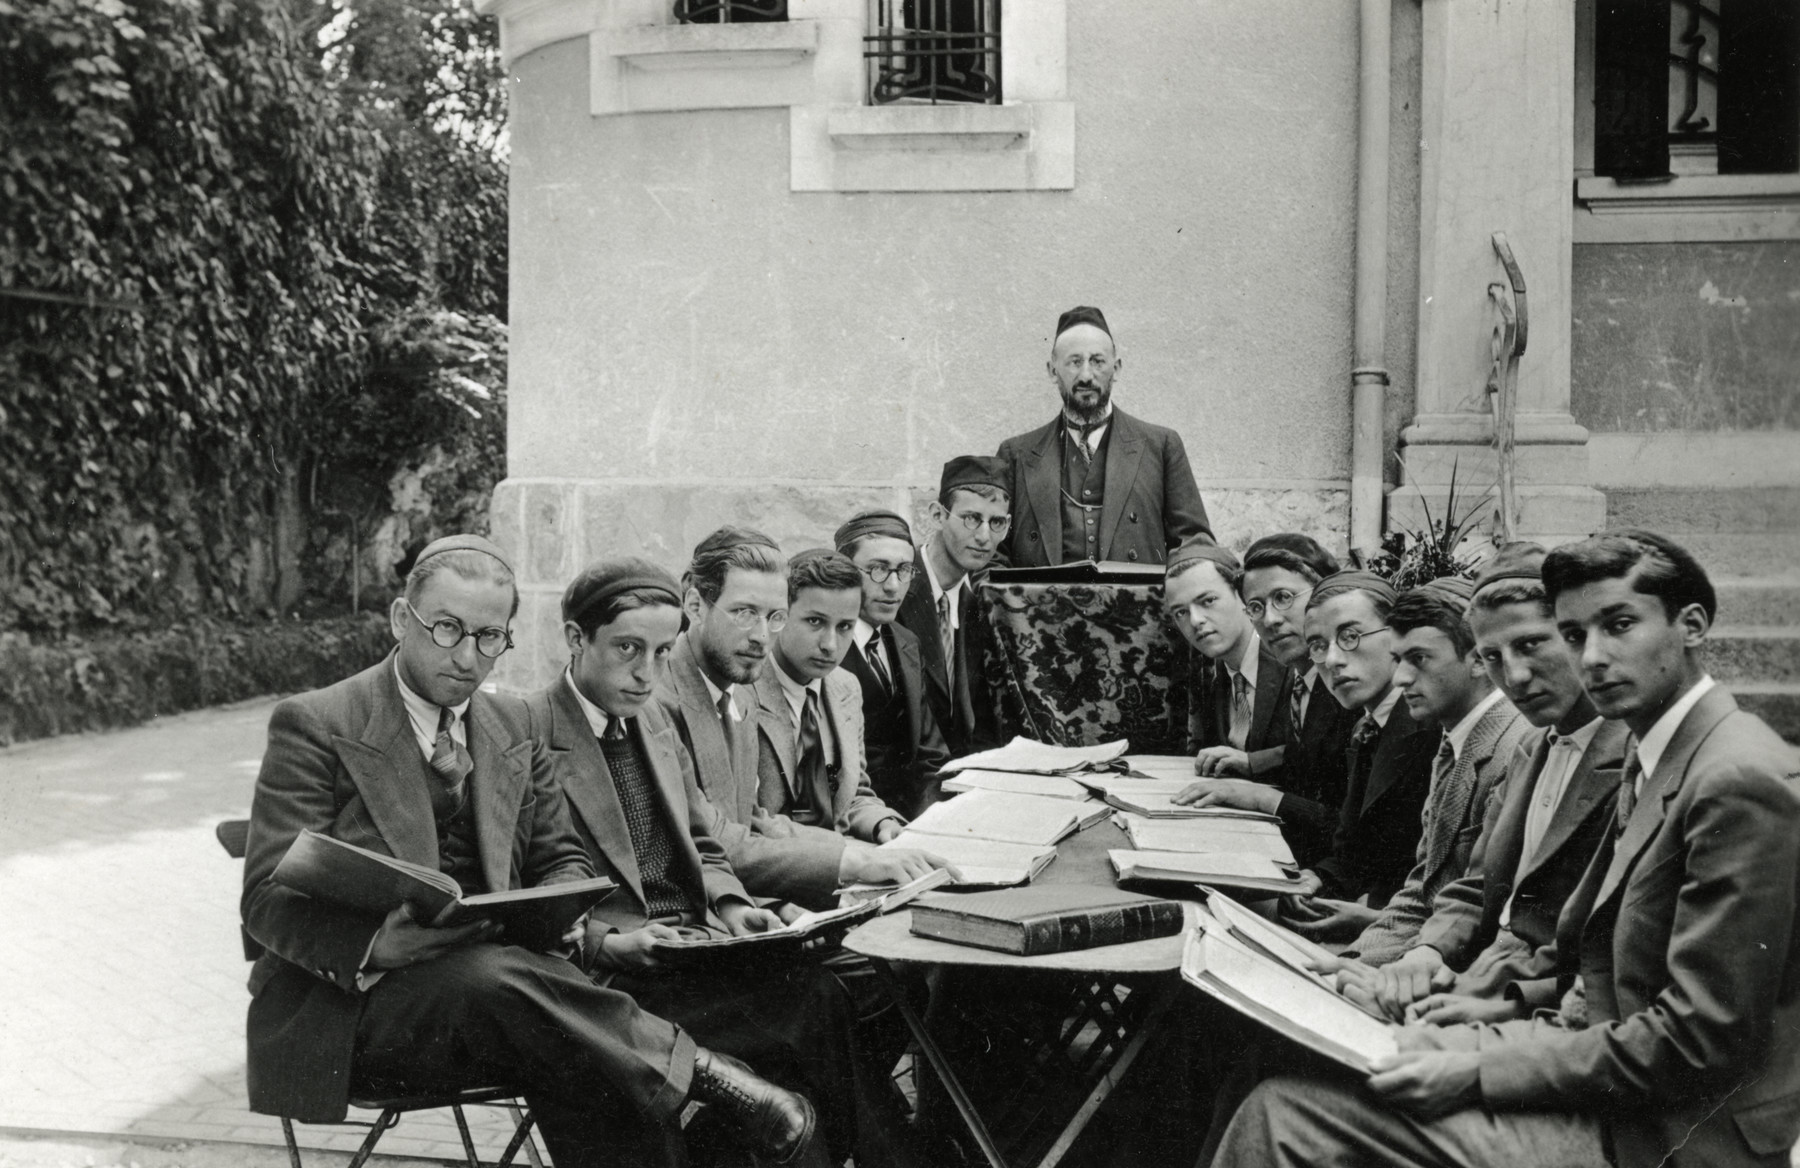 A group of rabbinical students studies outdoors around a table.  The teacher is standing at the far end of the table. Moise Cassorla (father of the donor) is sitting at the front left.